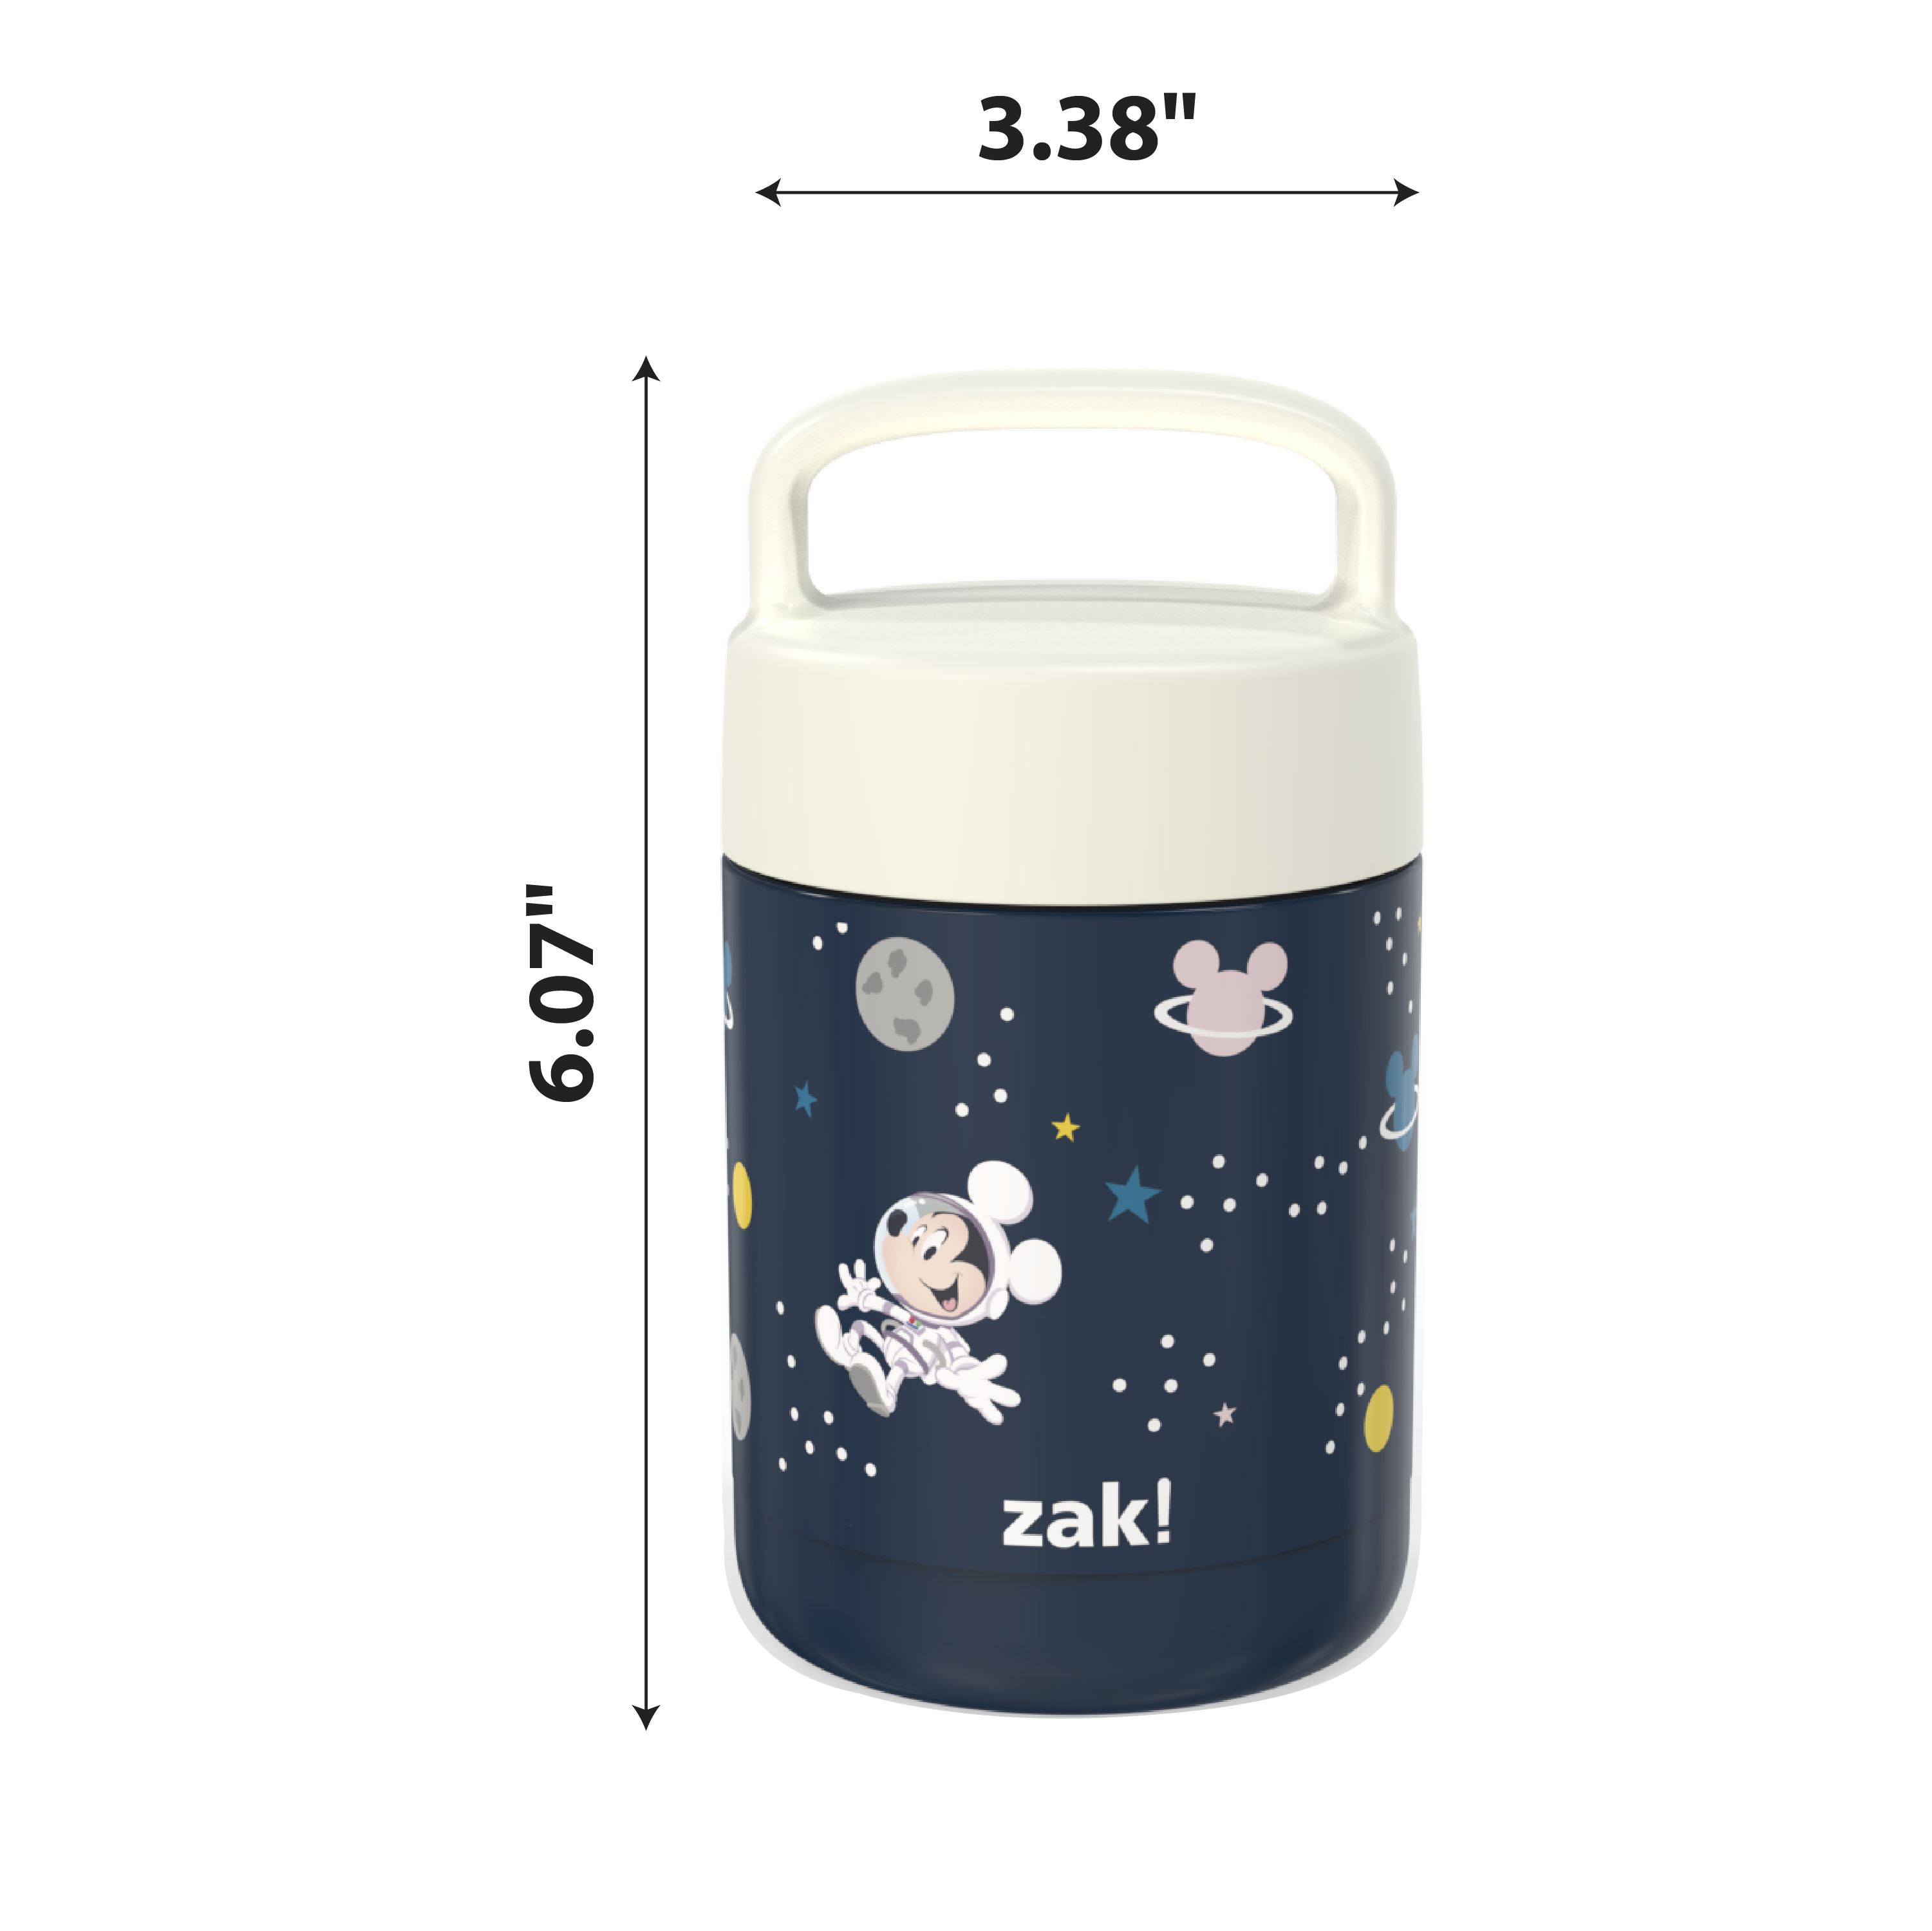 Disney Reusable Vacuum Insulated Stainless Steel Food Container, Mickey Mouse slideshow image 6